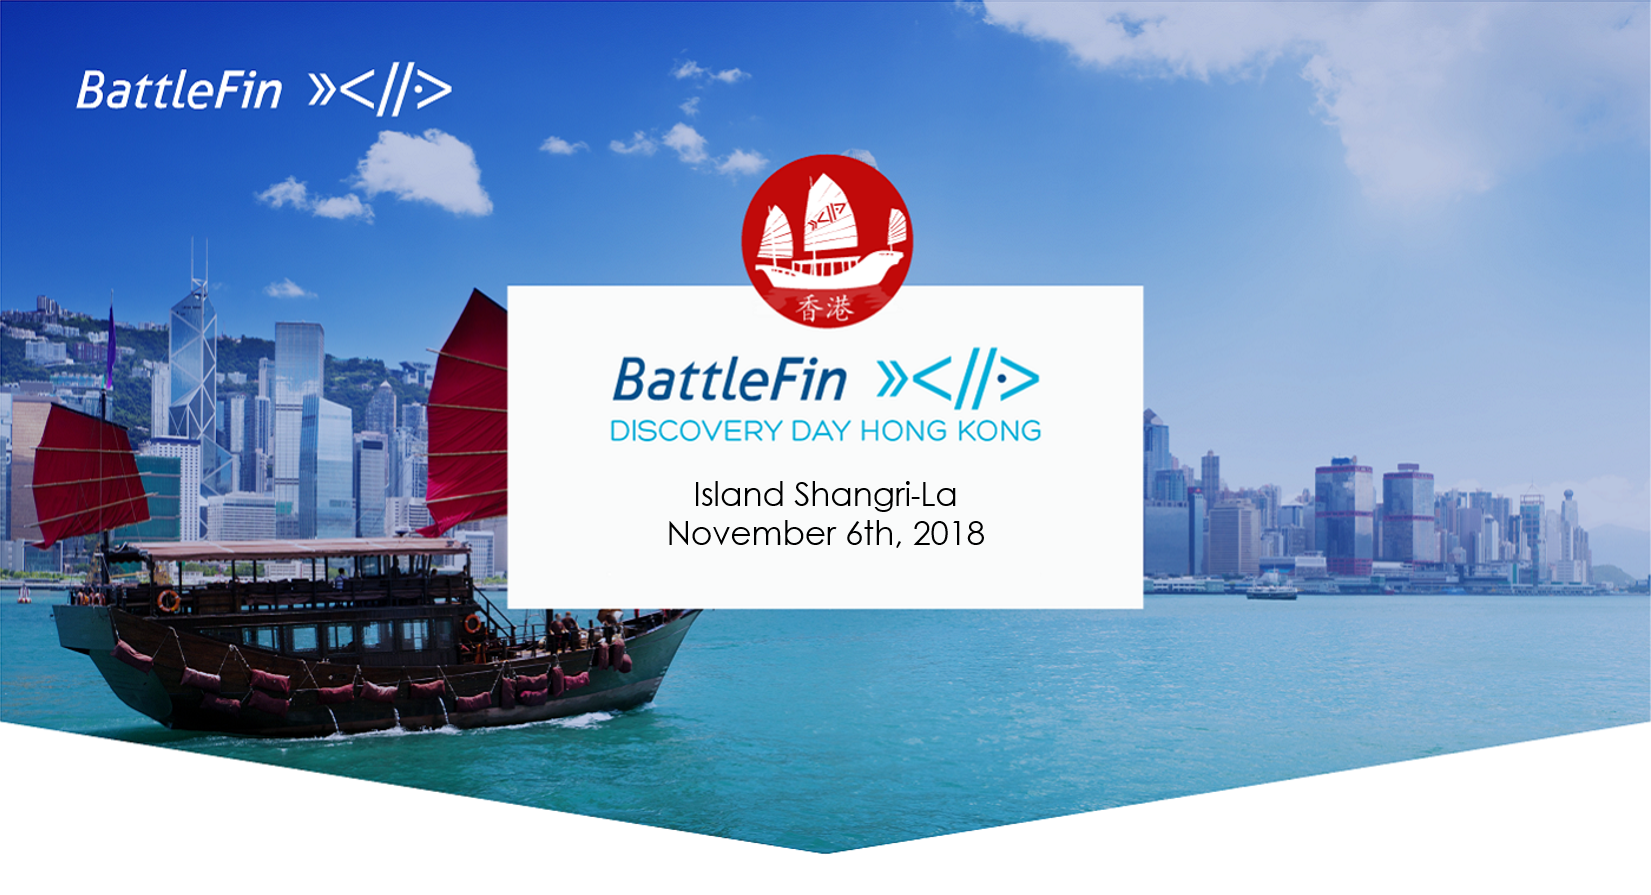 battlefin hong kong